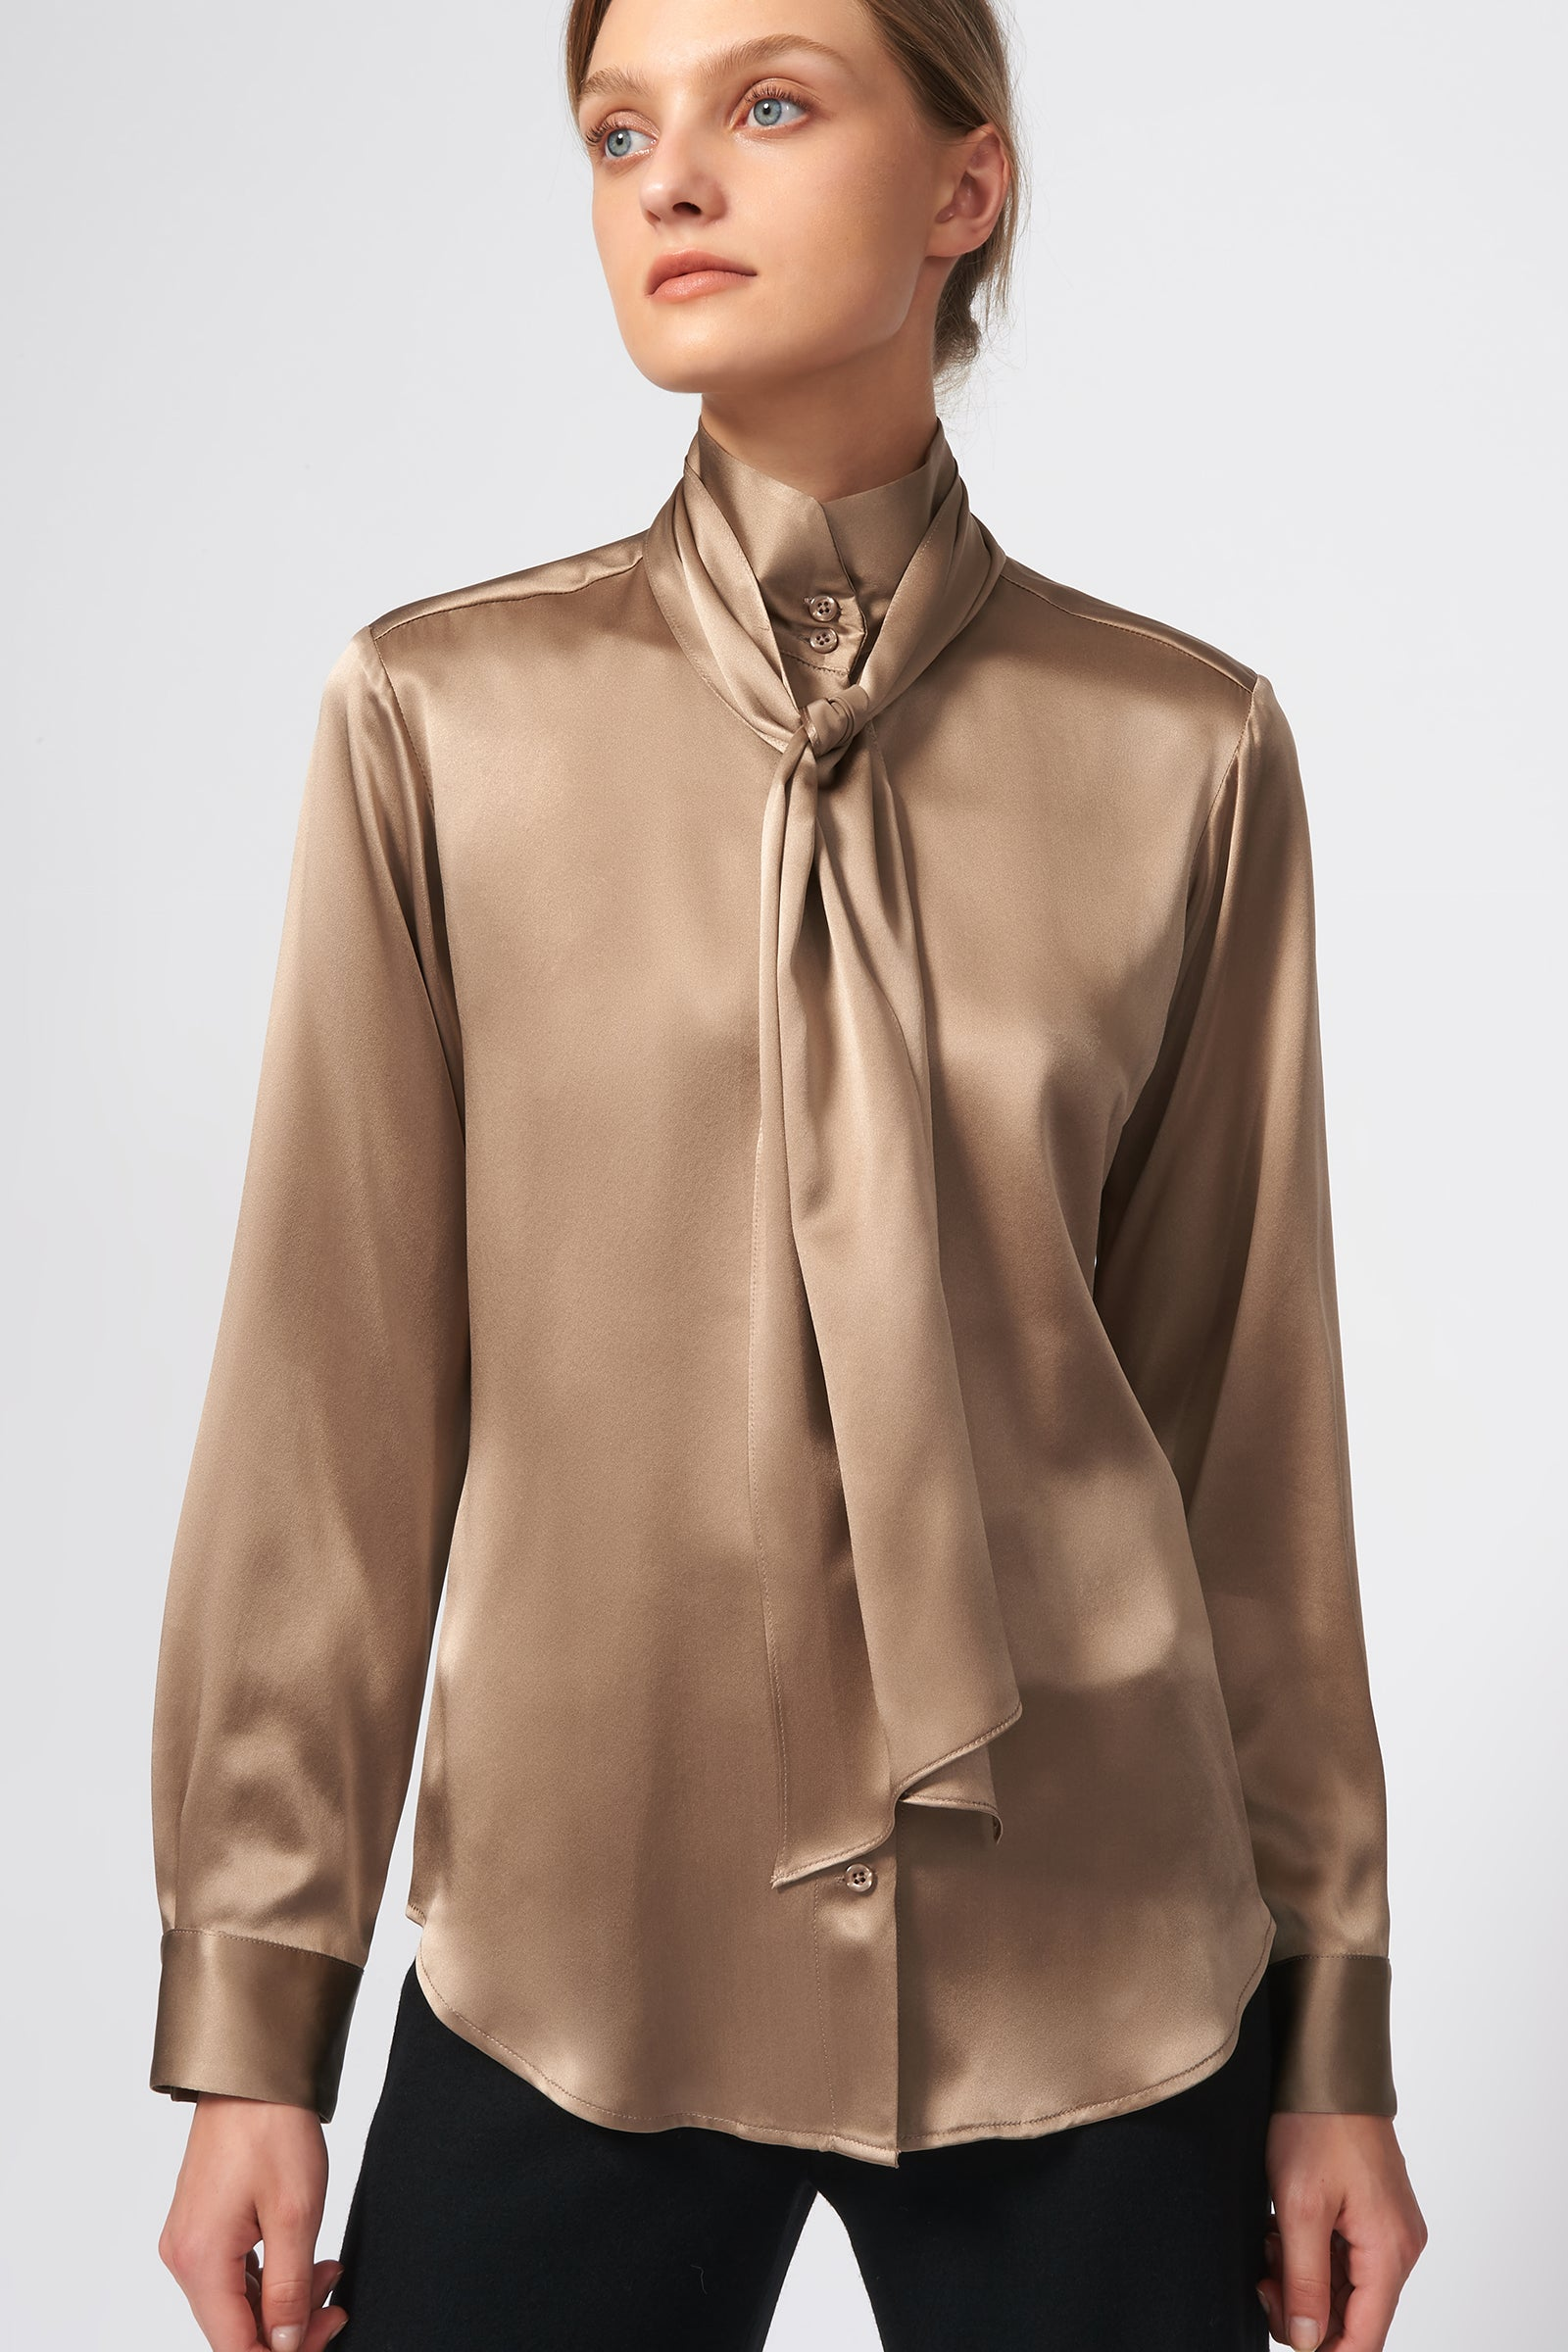 Kal Rieman Scarf Tie Blouse in Charmeuse on Model Front View